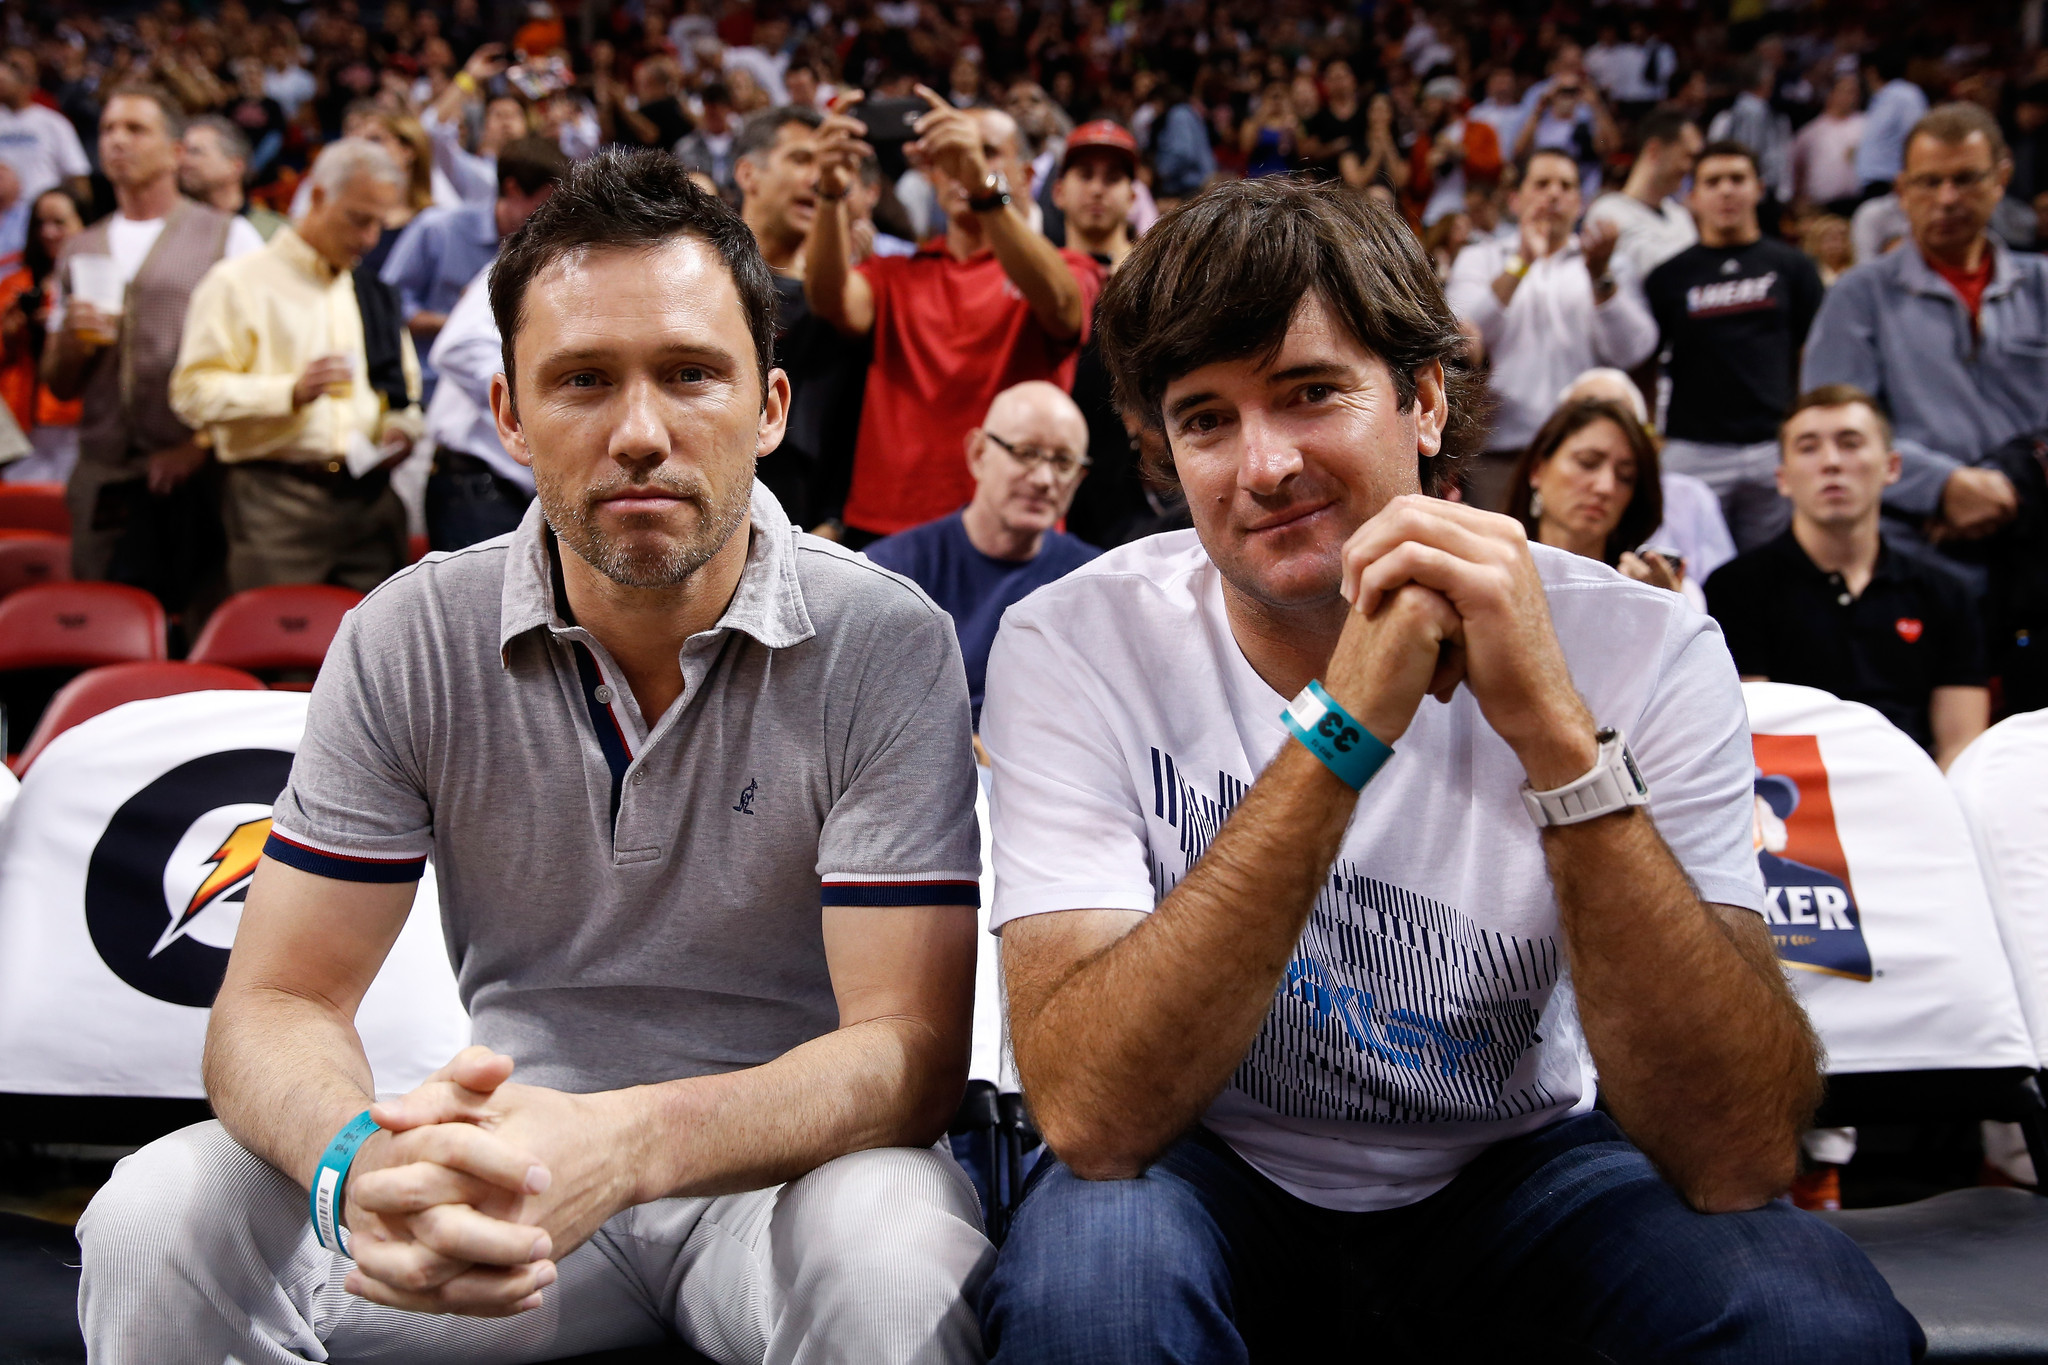 Celebs spotted at Miami Heat games - Orlando Magic v Miami Heat